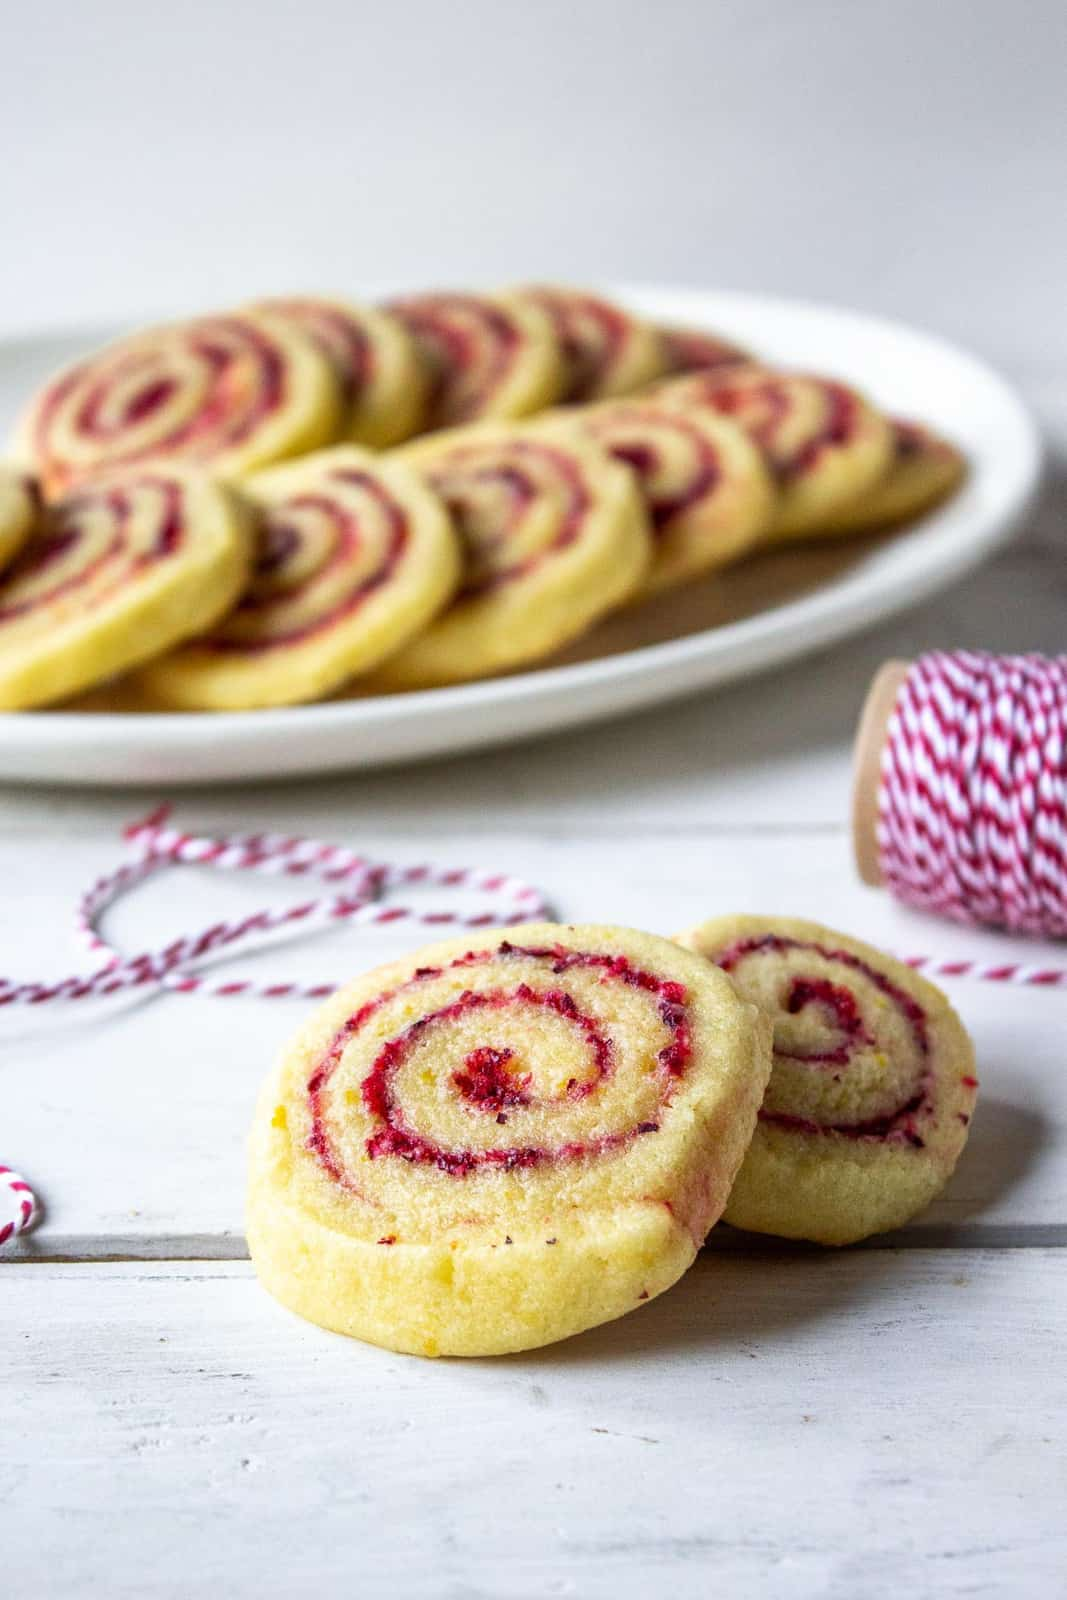 Cranberry filled cookies on a counter with a plateful of cookies in the background.